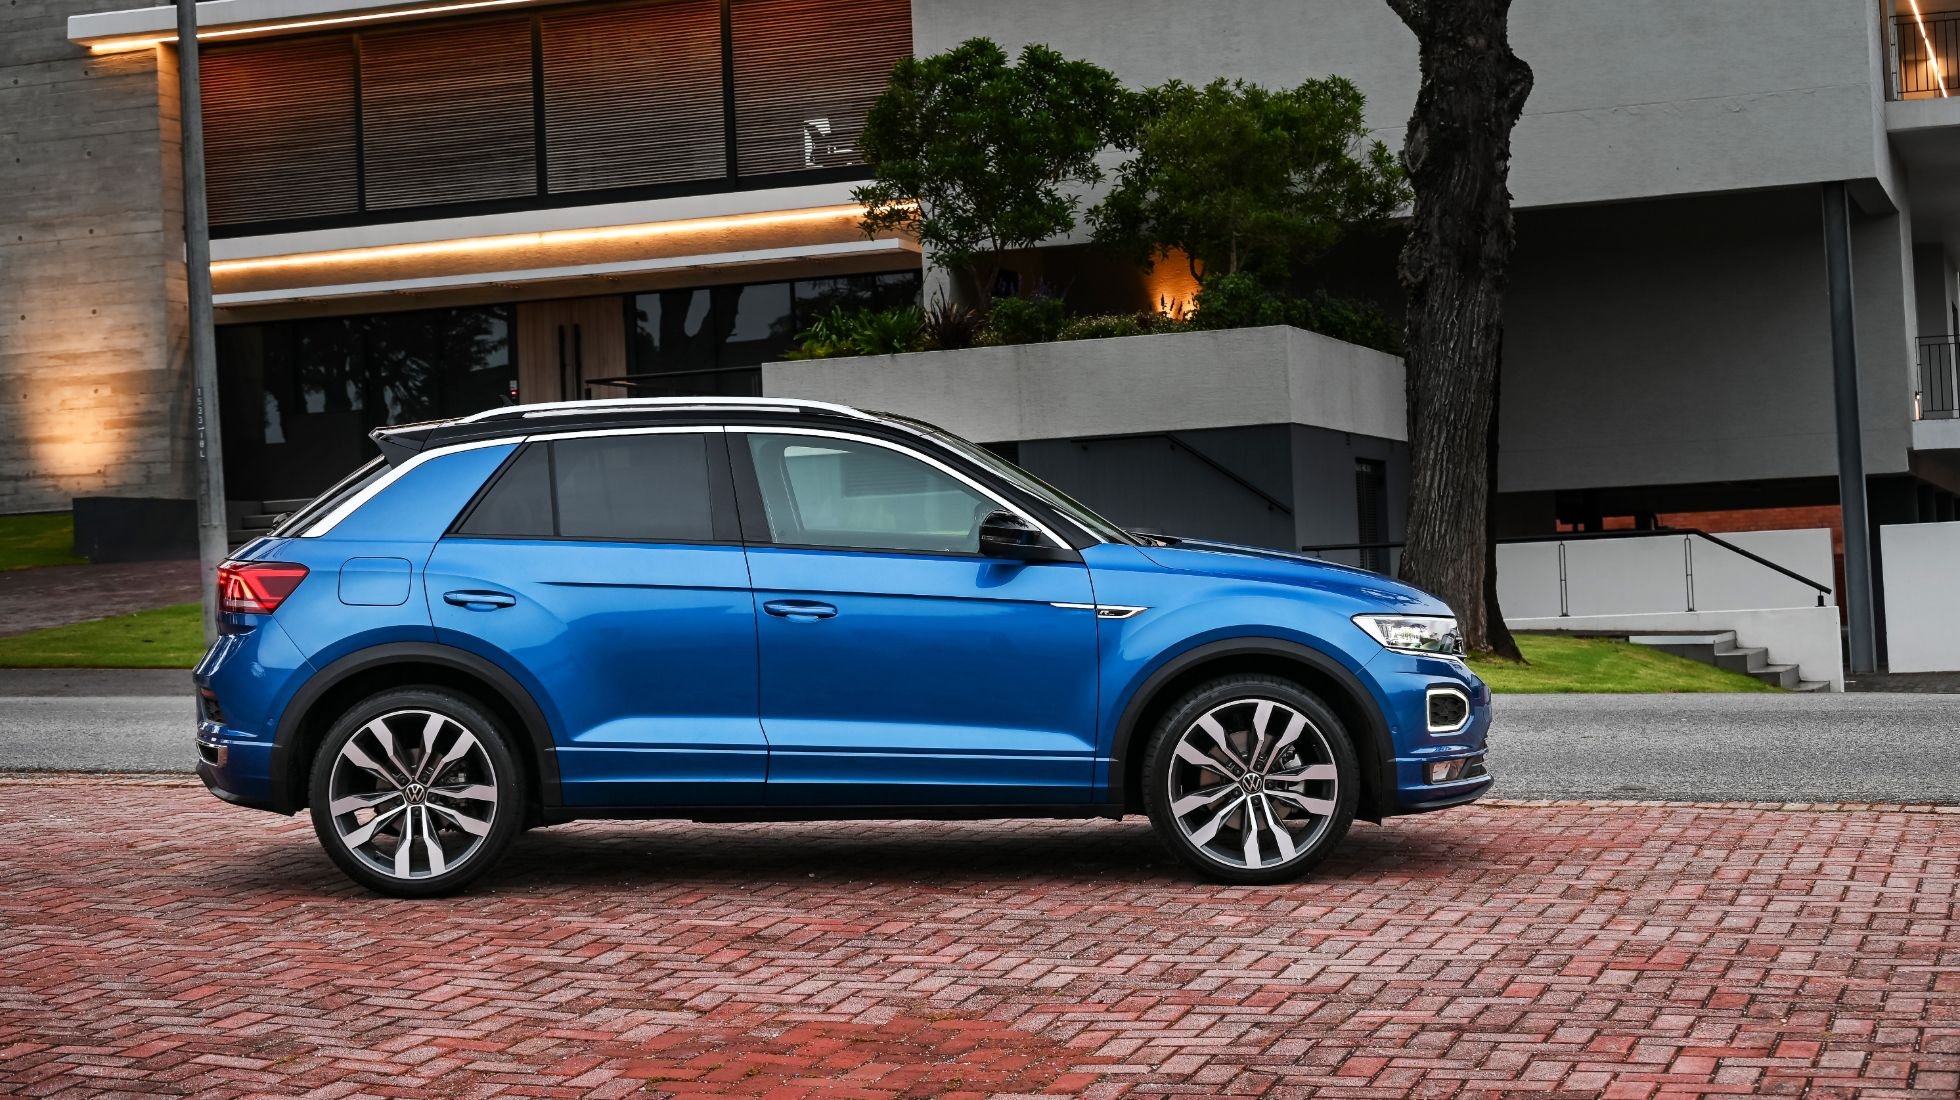 FIRST DRIVE: Volkswagen's decorated T-Roc SUV arrives in Mzansi